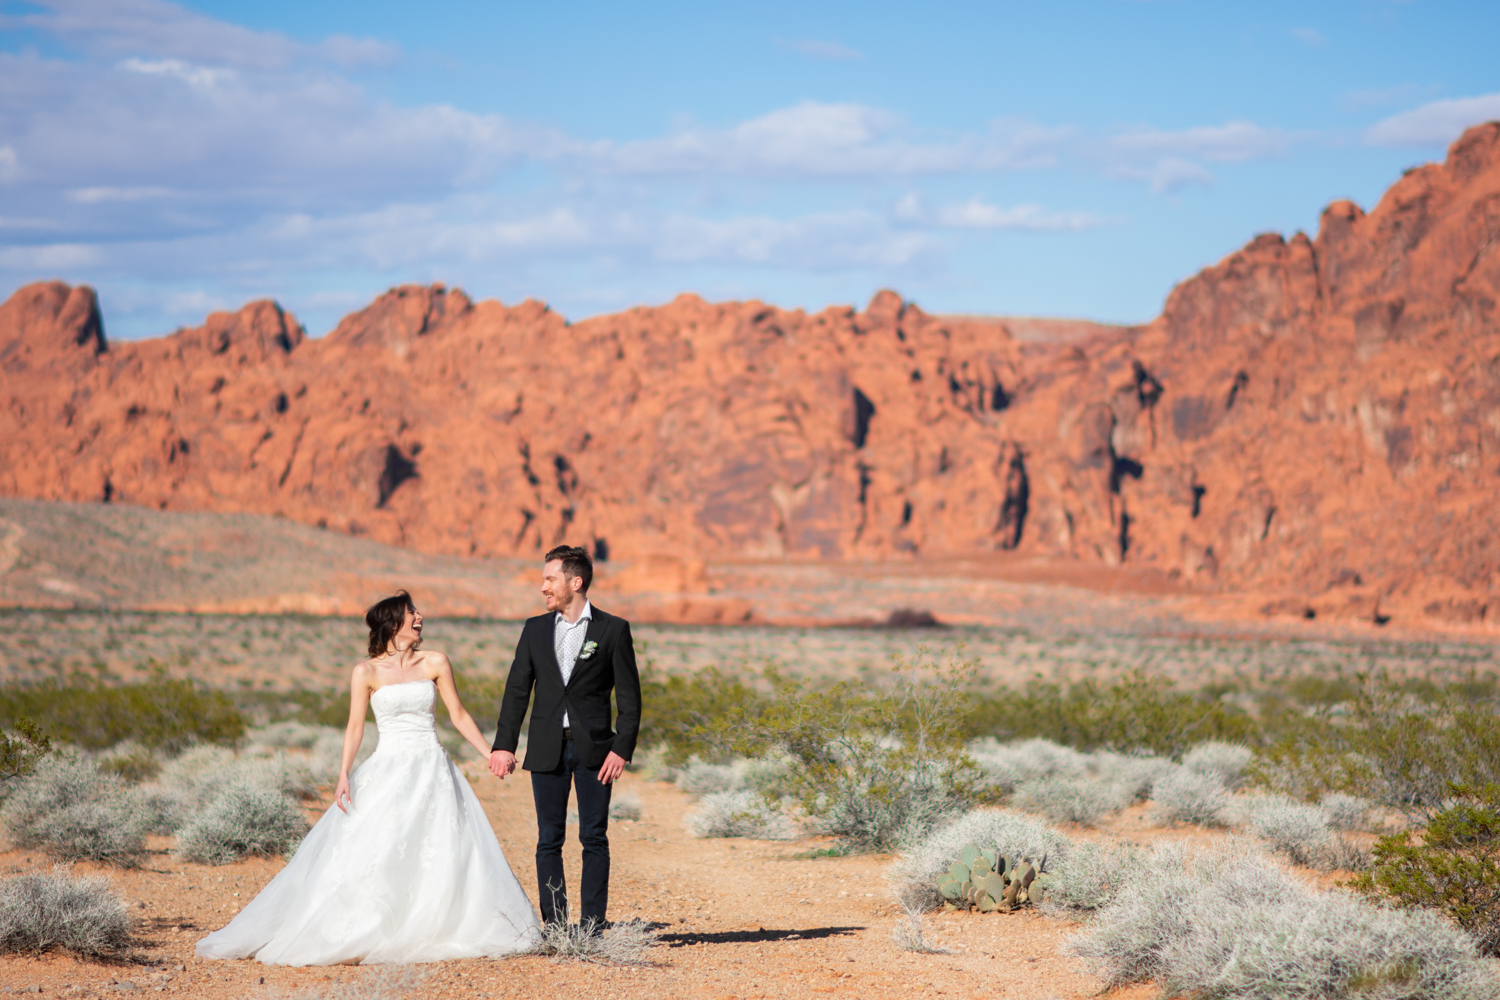 Couple in Wedding Attire Holding Hands and Laughing in the Desert